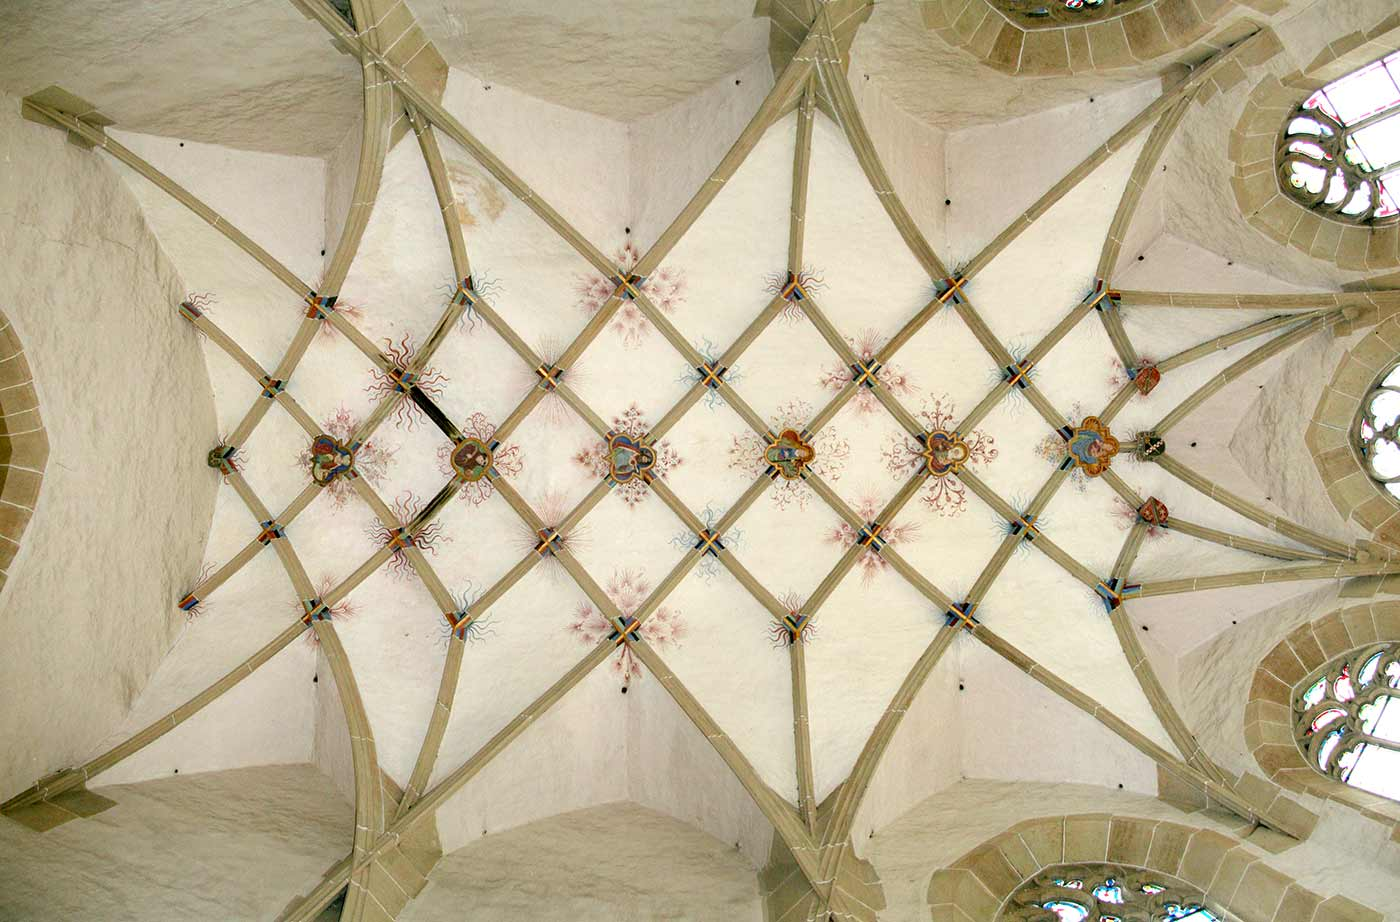 Rib-vault ceiling, with Lierne ribs, of the Liebfrauenkirche, Mühlacker 1482.